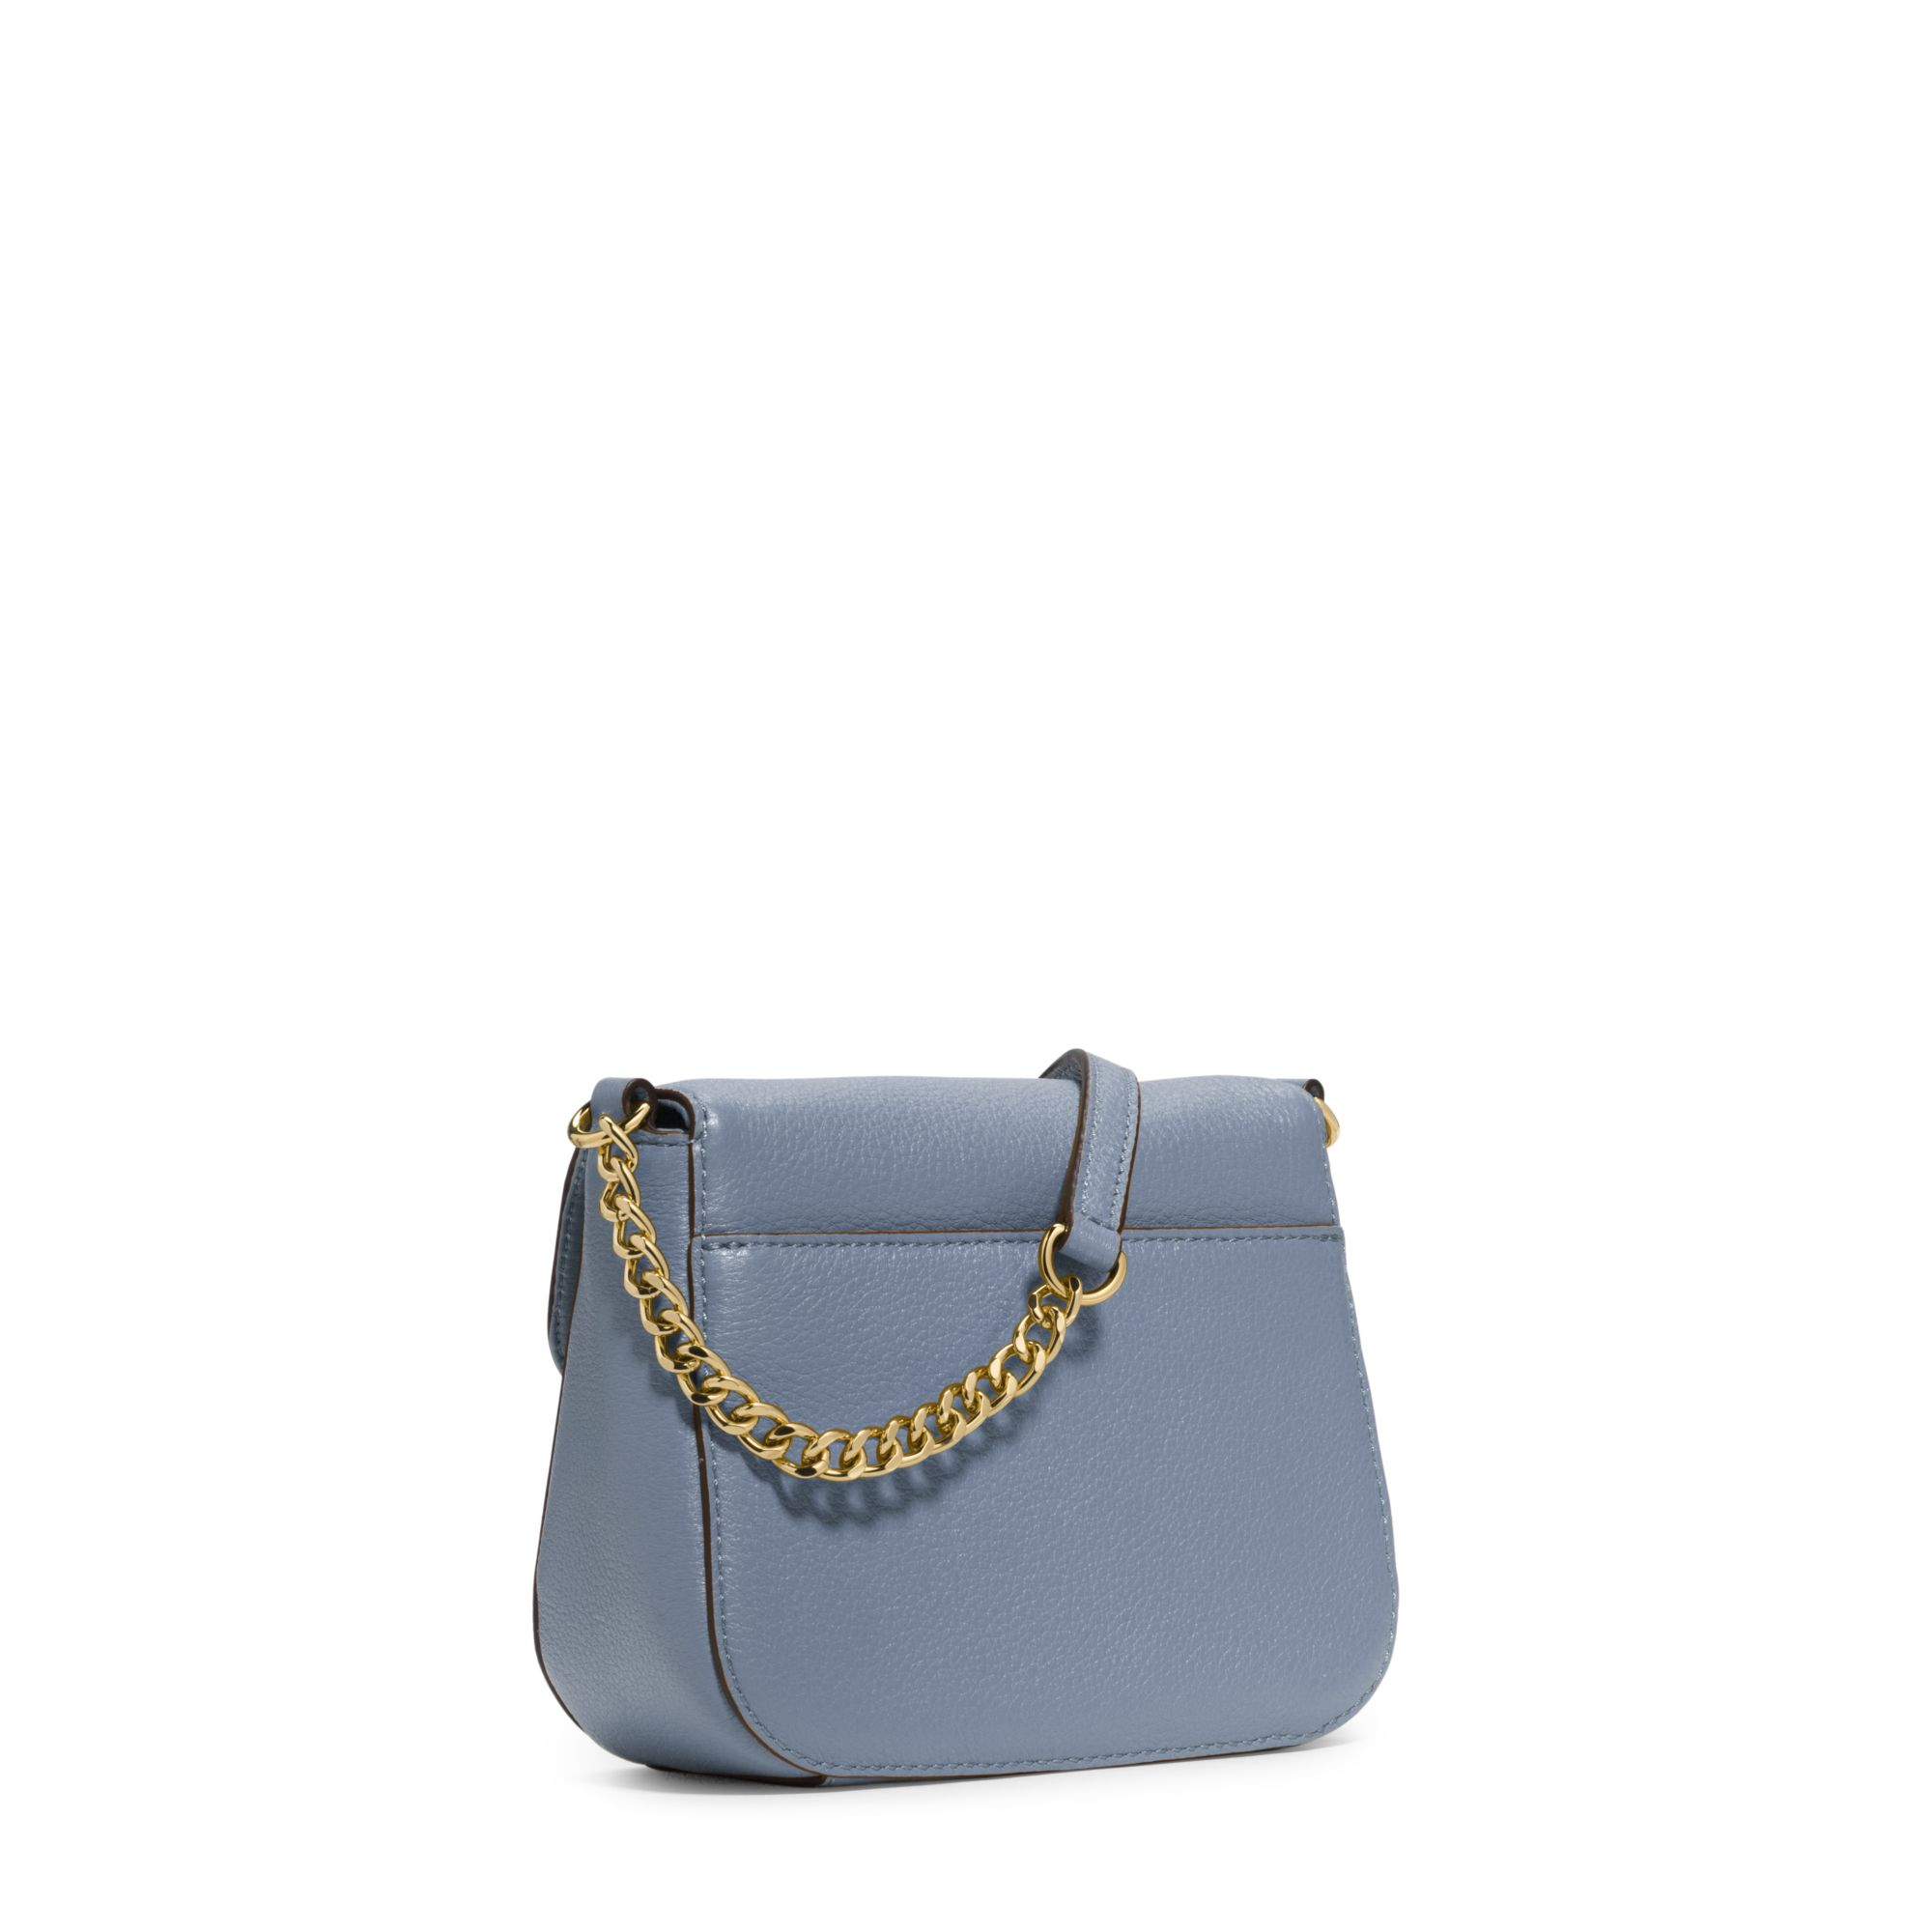 michael kors fulton leather small crossbody in blue lyst. Black Bedroom Furniture Sets. Home Design Ideas